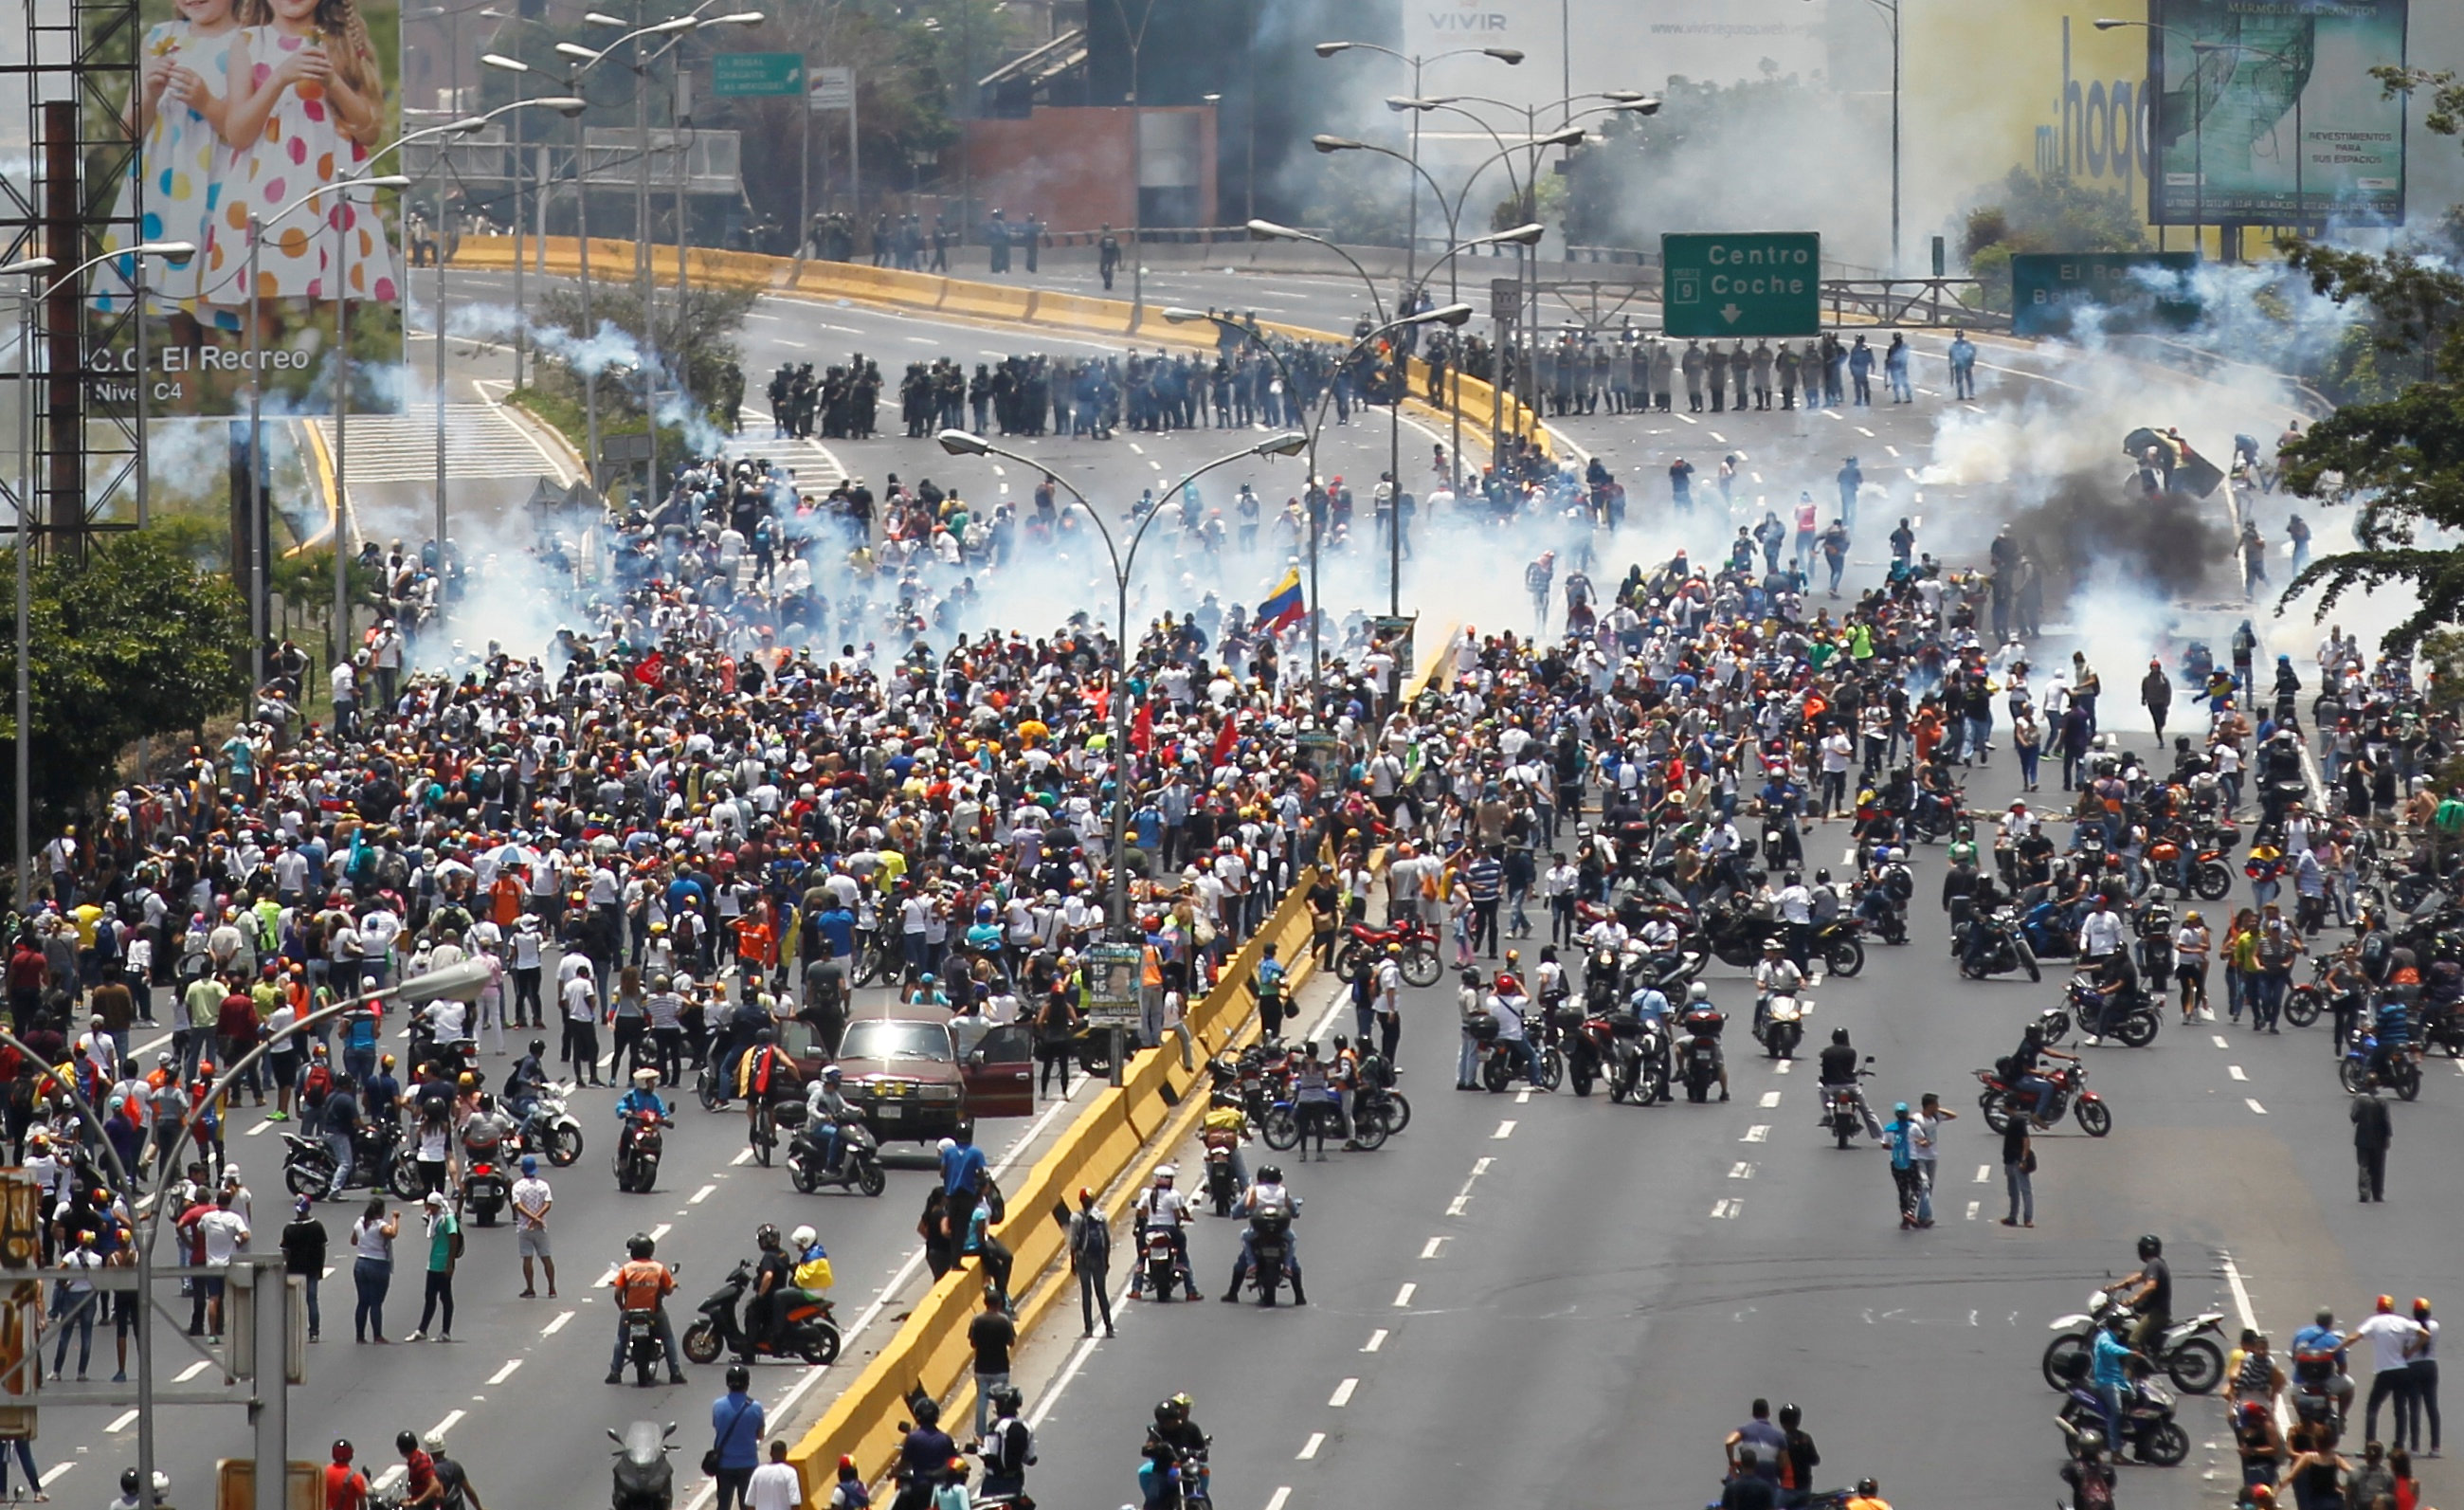 Demonstrators clash with riot police while ralling against Venezuela's President Nicolas Maduro's government in Caracas,